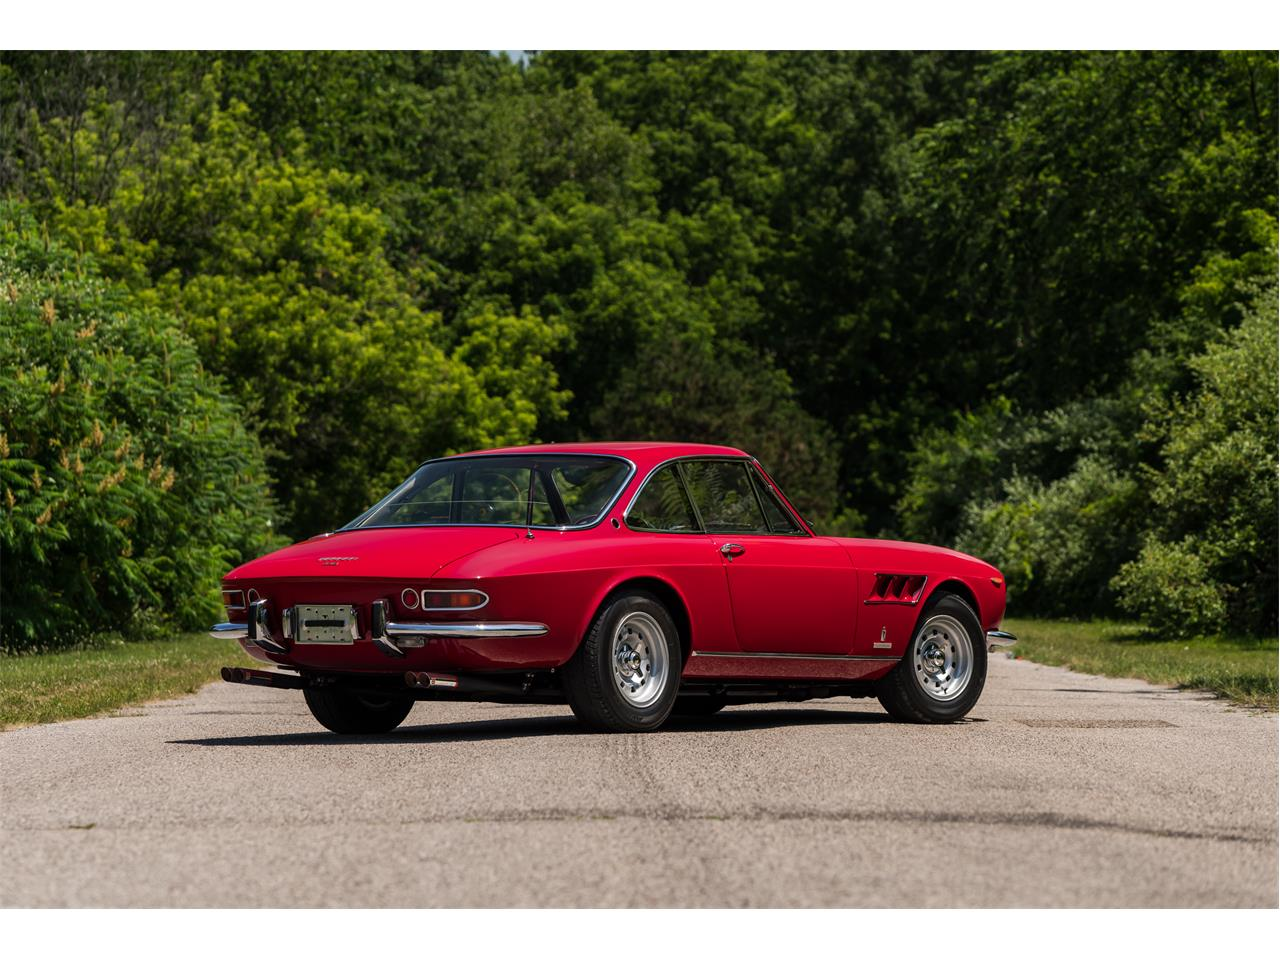 Large Picture of '67 Ferrari 330 GTC located in Michigan - $650,000.00 - QNXU